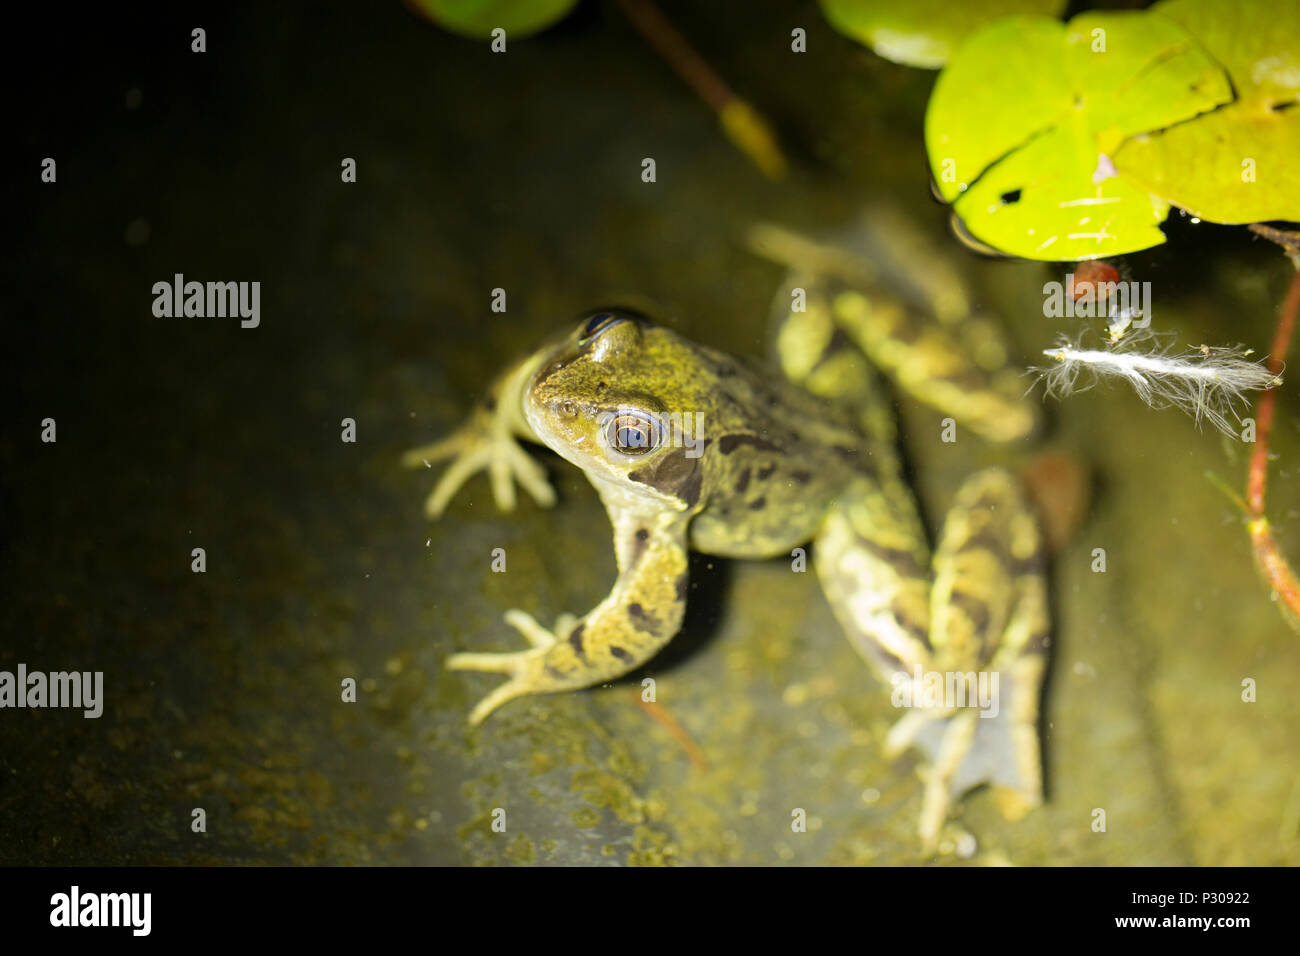 A common frog, Rana temporaria, on the edge of a garden pond photographed at night. Lancashire North West England UK GB - Stock Image